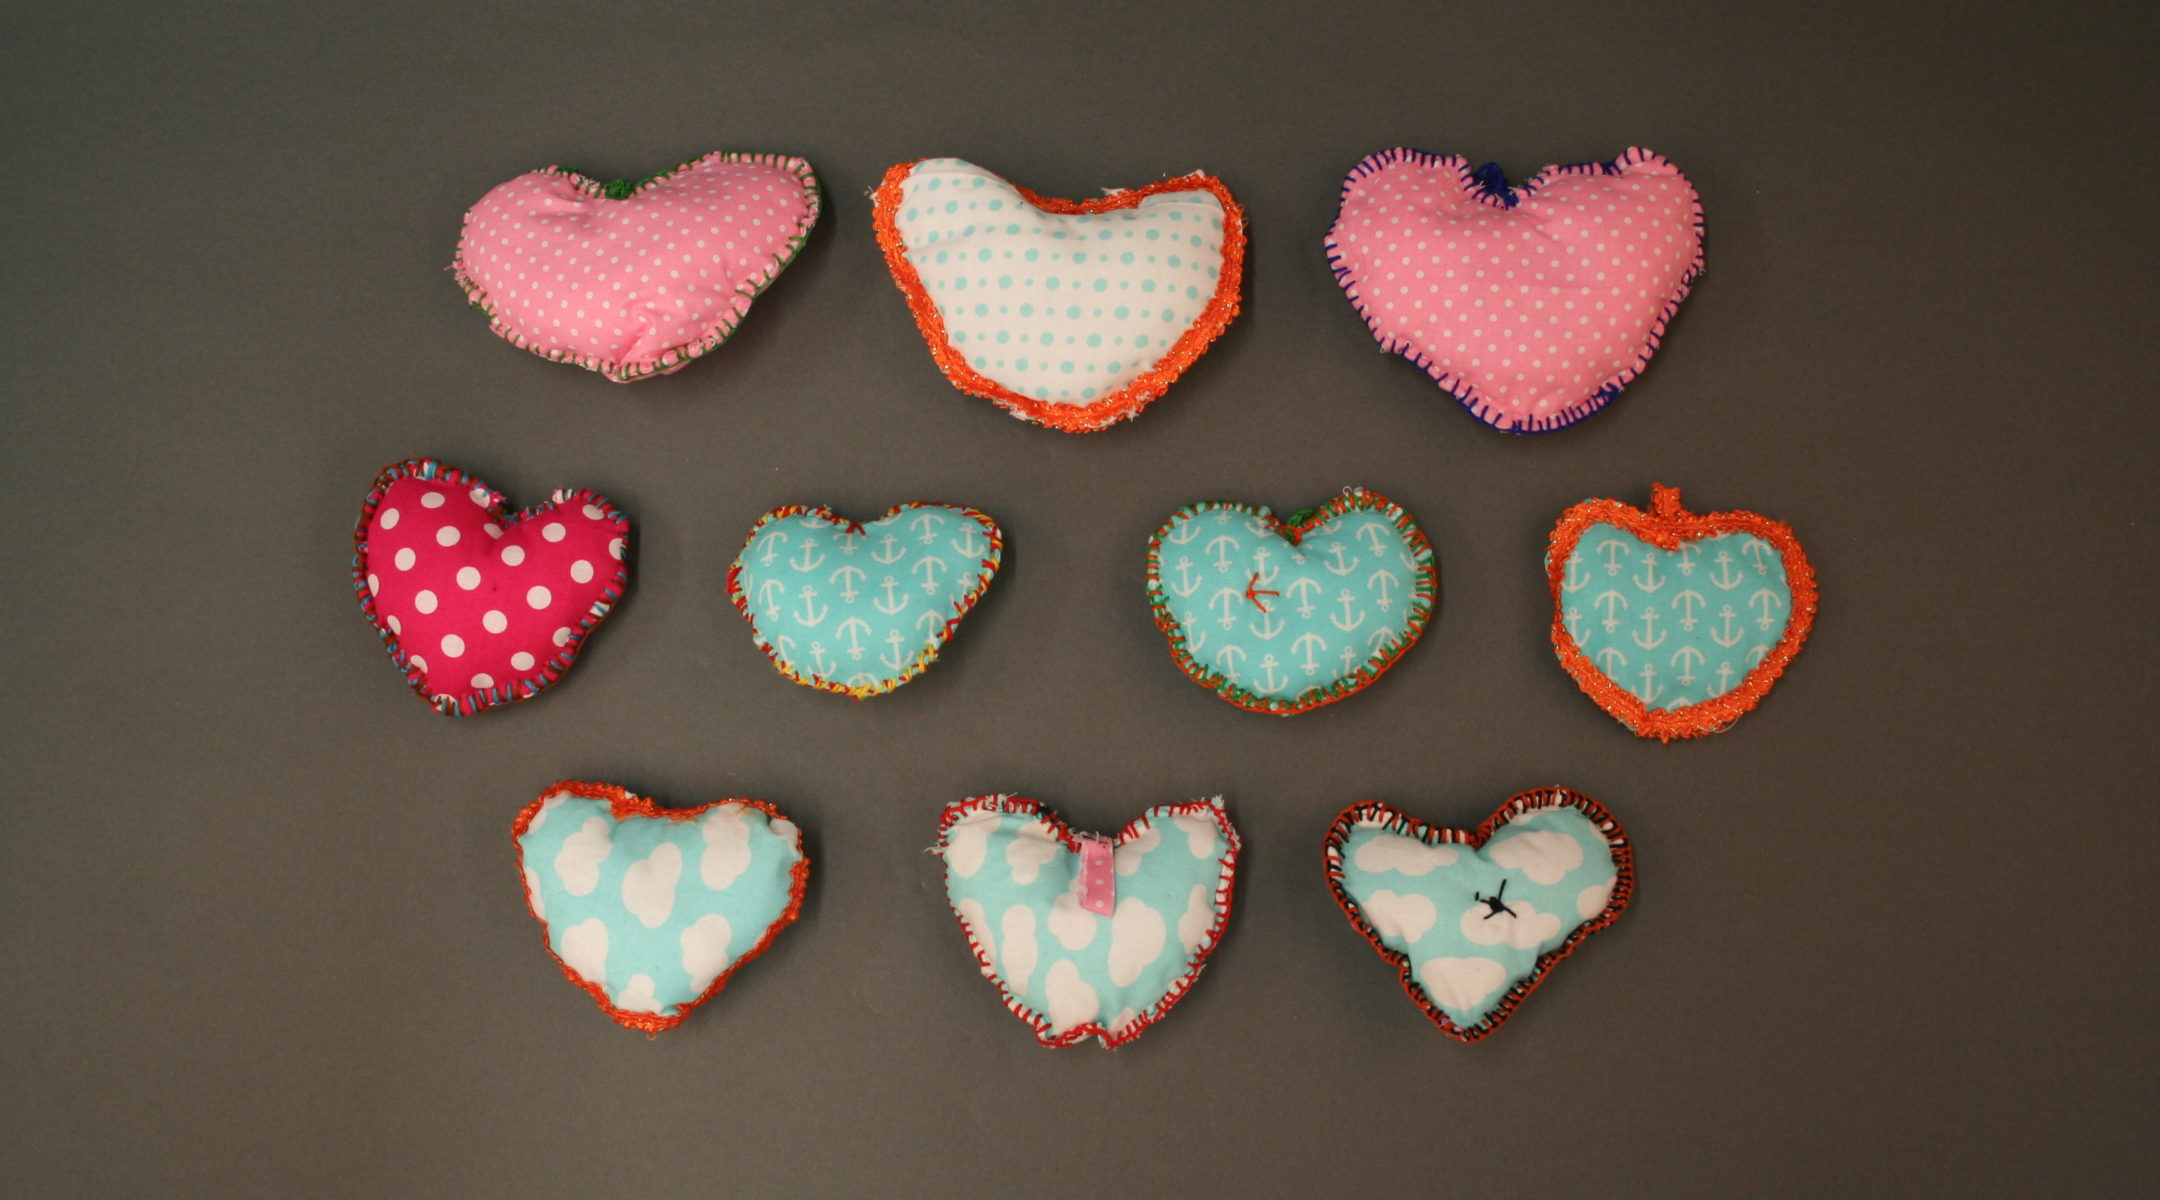 Quilted hearts sent in memoriam of the Pittsburgh synagogue shooting. (Courtesy of the Rauh Jewish Archives)